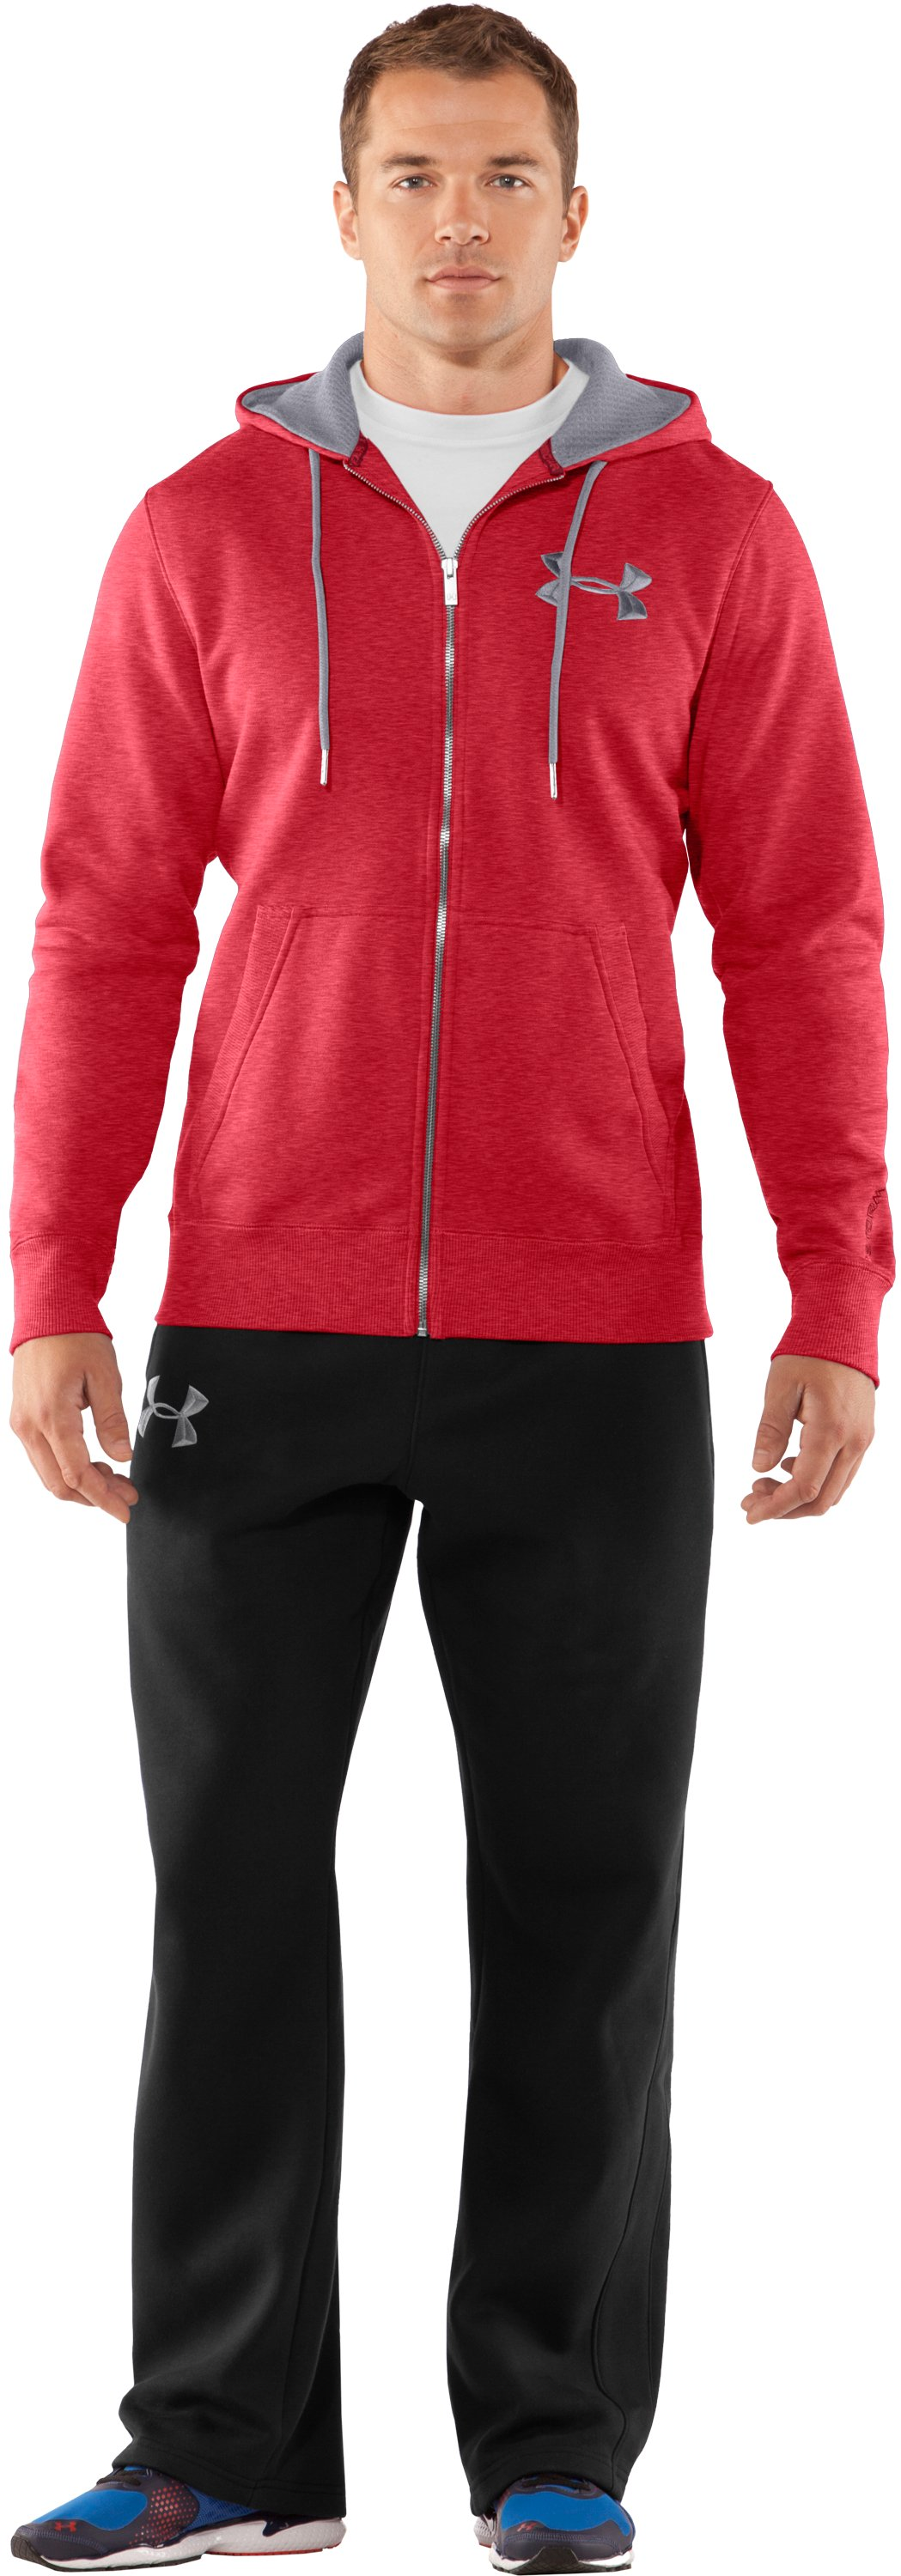 Men's Charged Cotton® Storm Full Zip Hoodie, Red, zoomed image